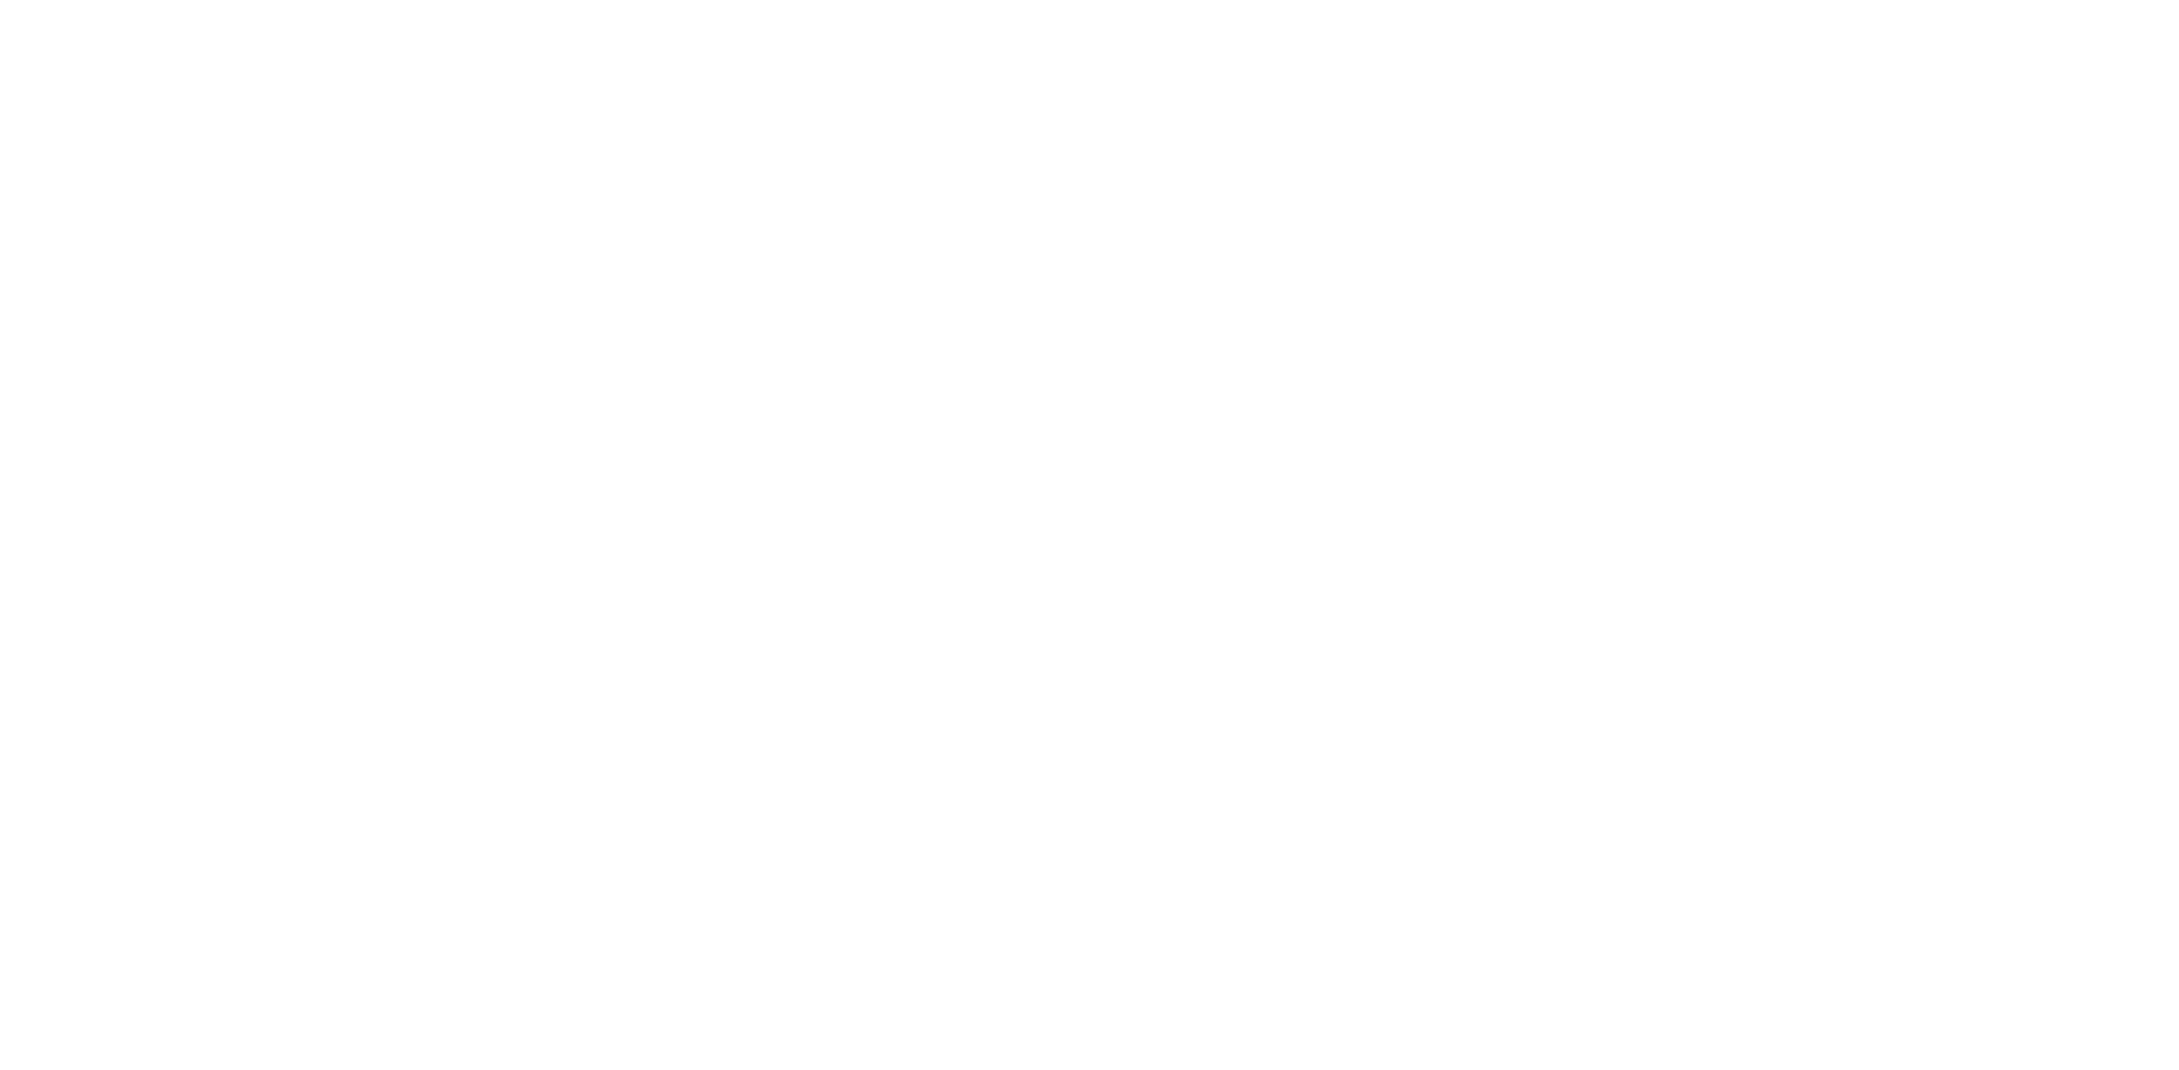 Students.png